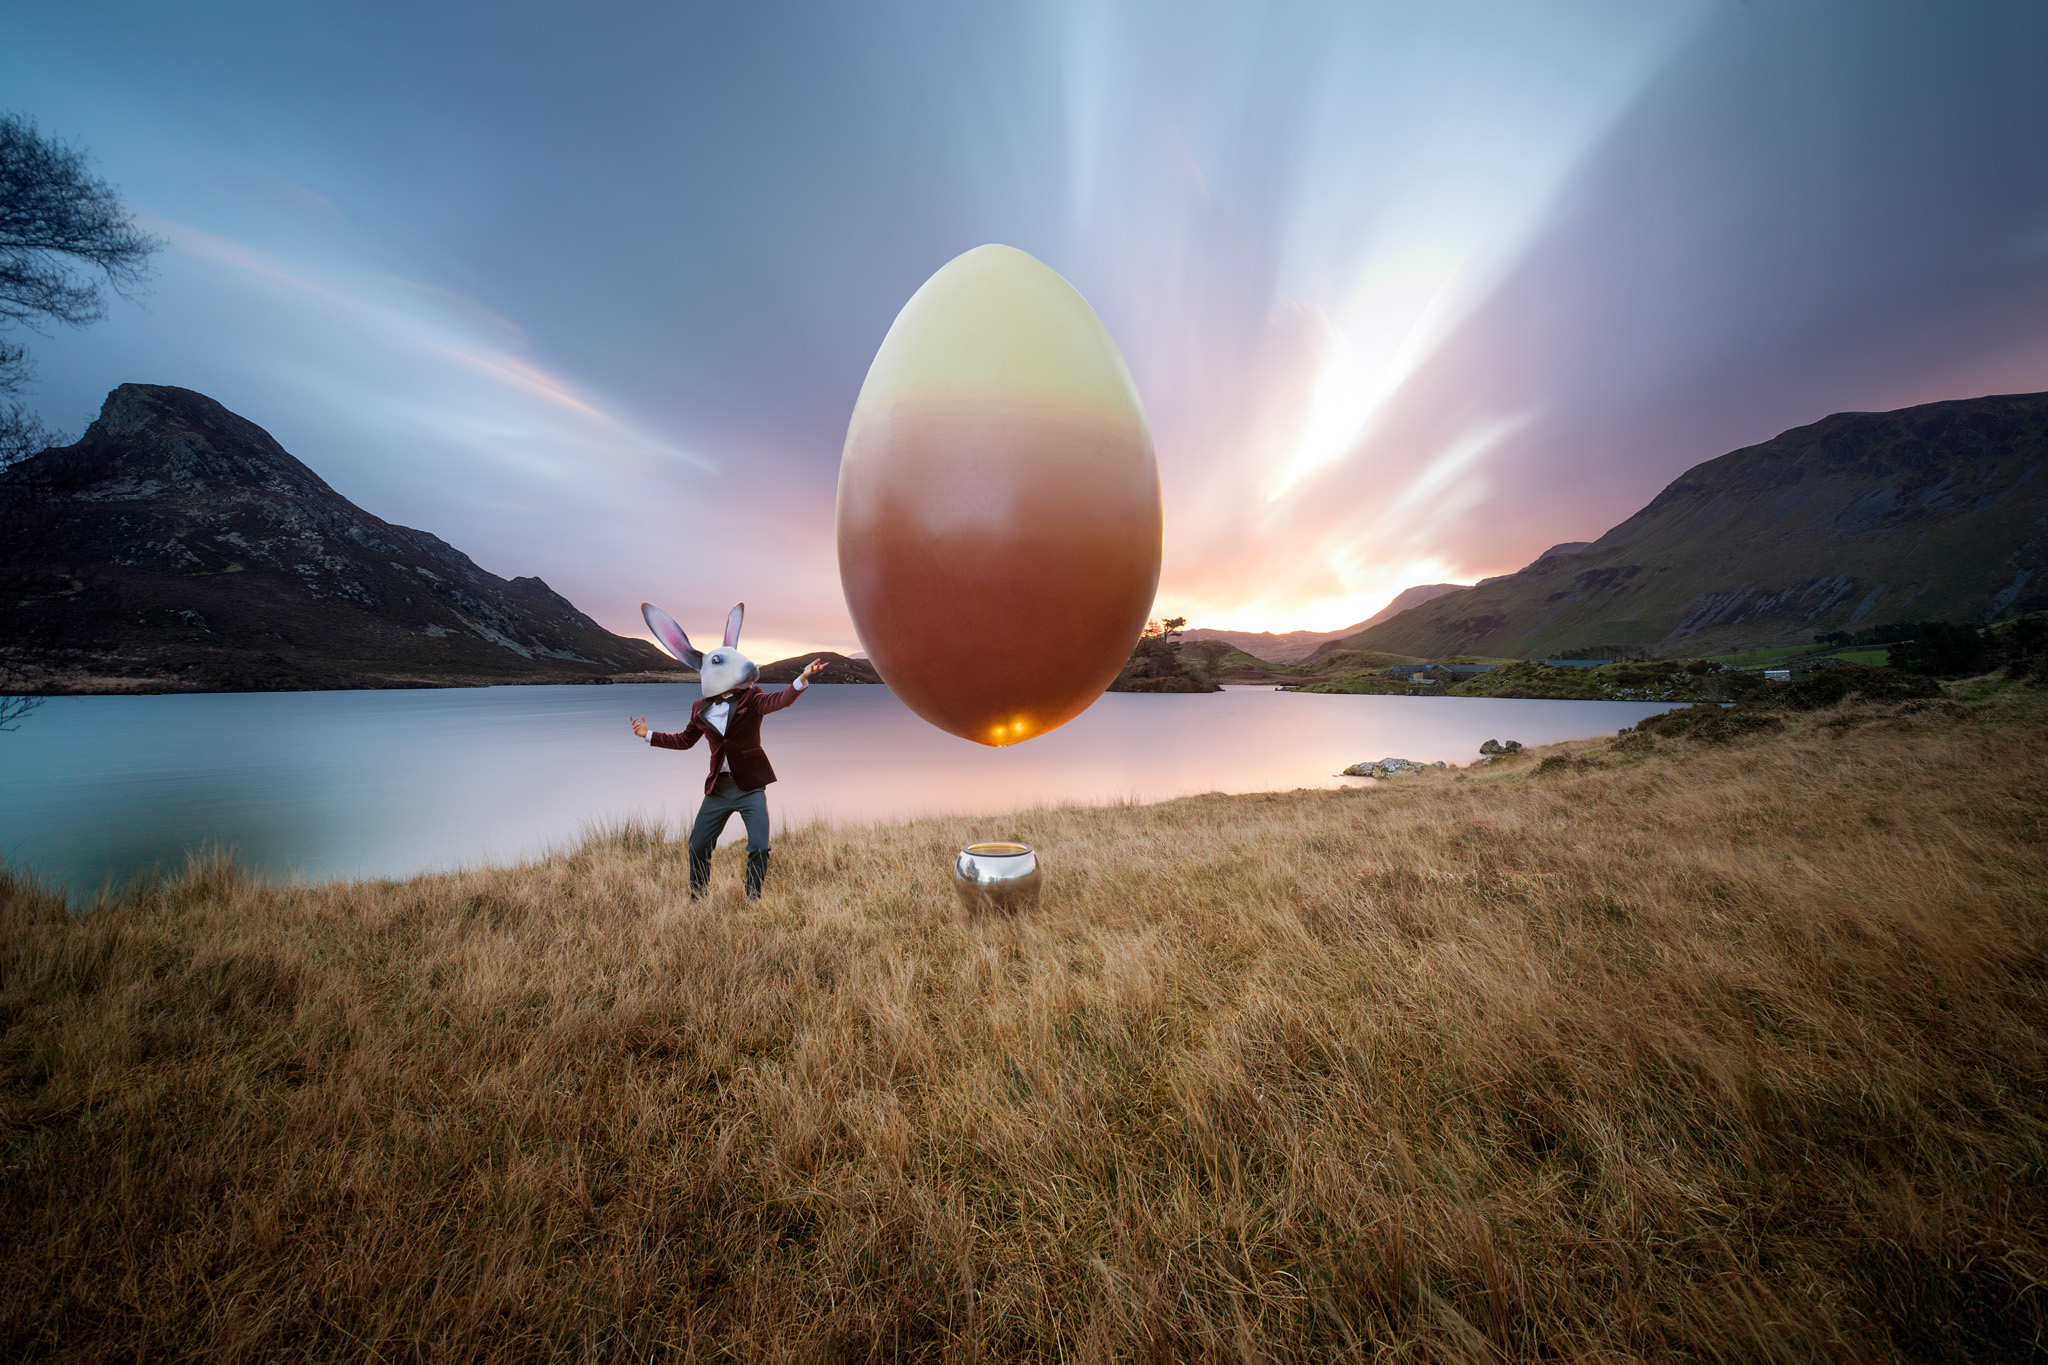 Hotel Chocolat.  A surreal advertising campaign for High Street confectioners Hotel Chocolat featuring brand ambassador Beau Bunny and a levitating egg. Photographed at Cadair Idris, Wales